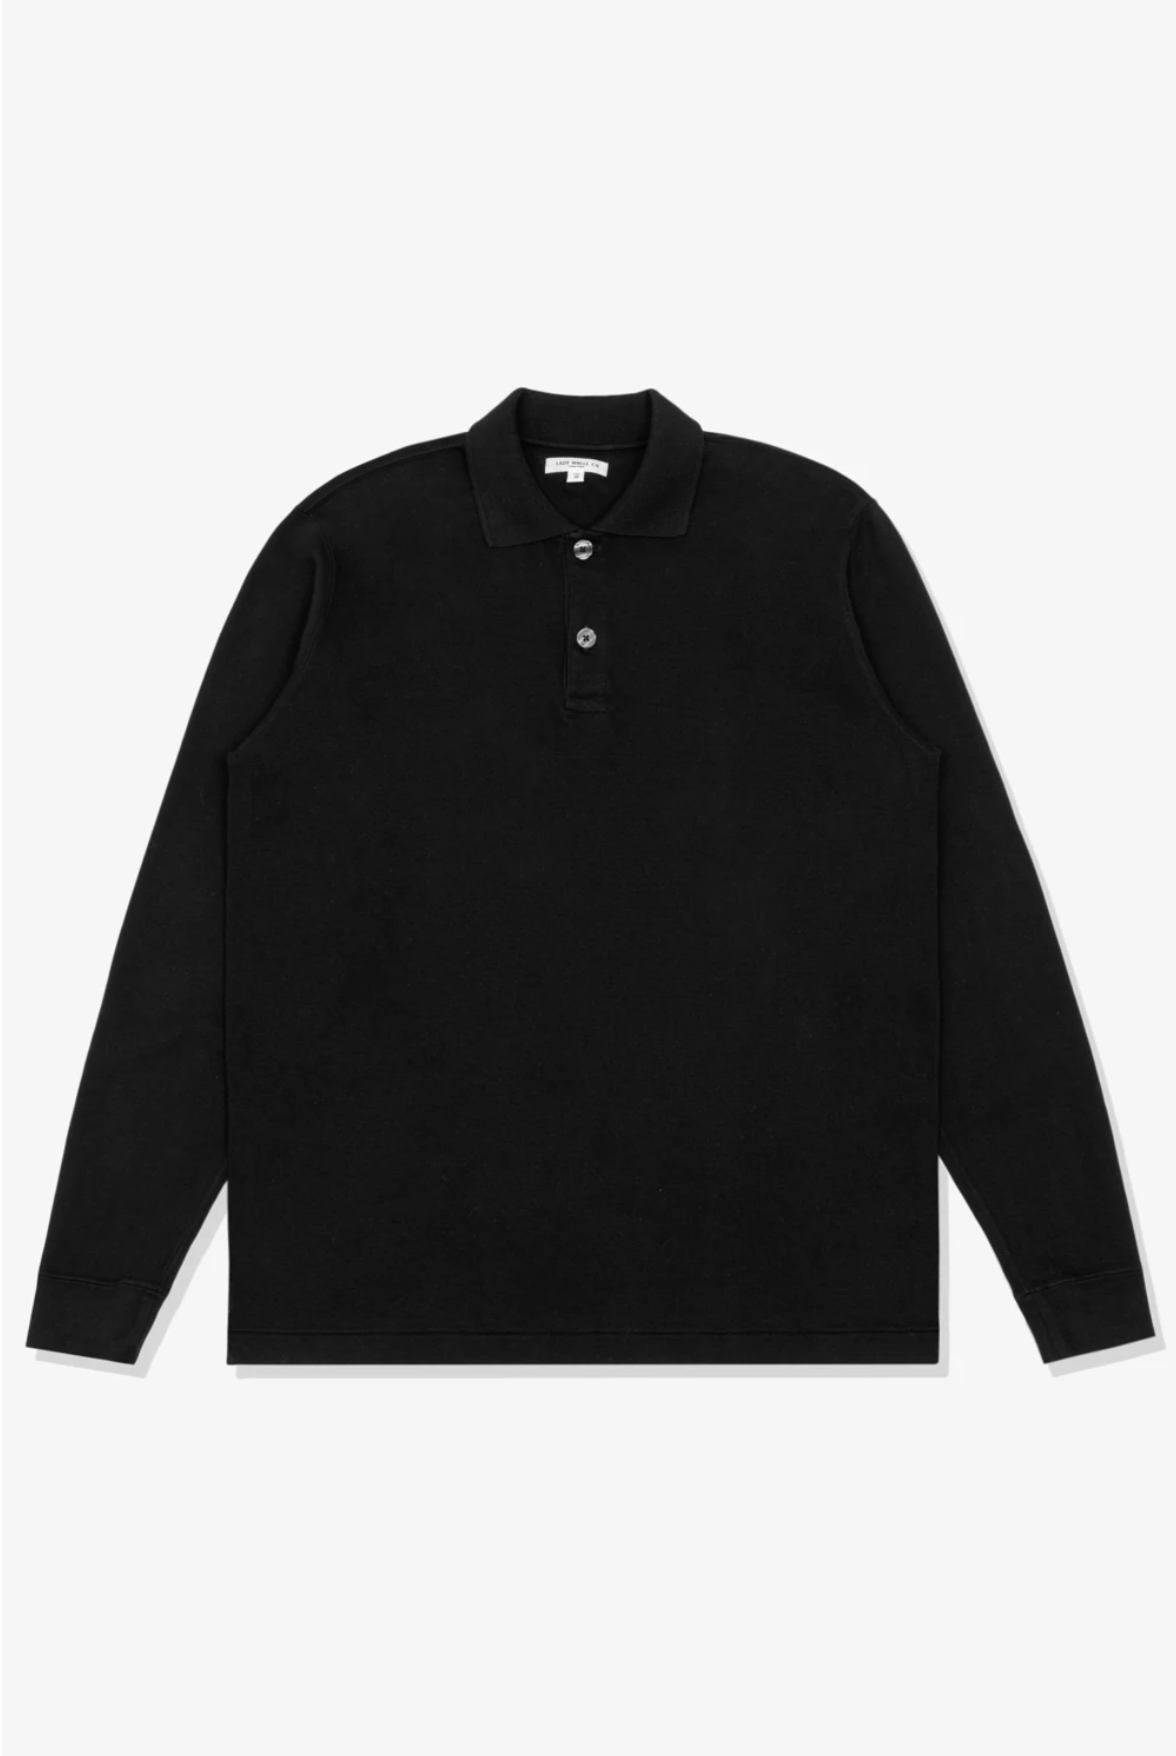 L/S PLACKETT POLO - BLACK